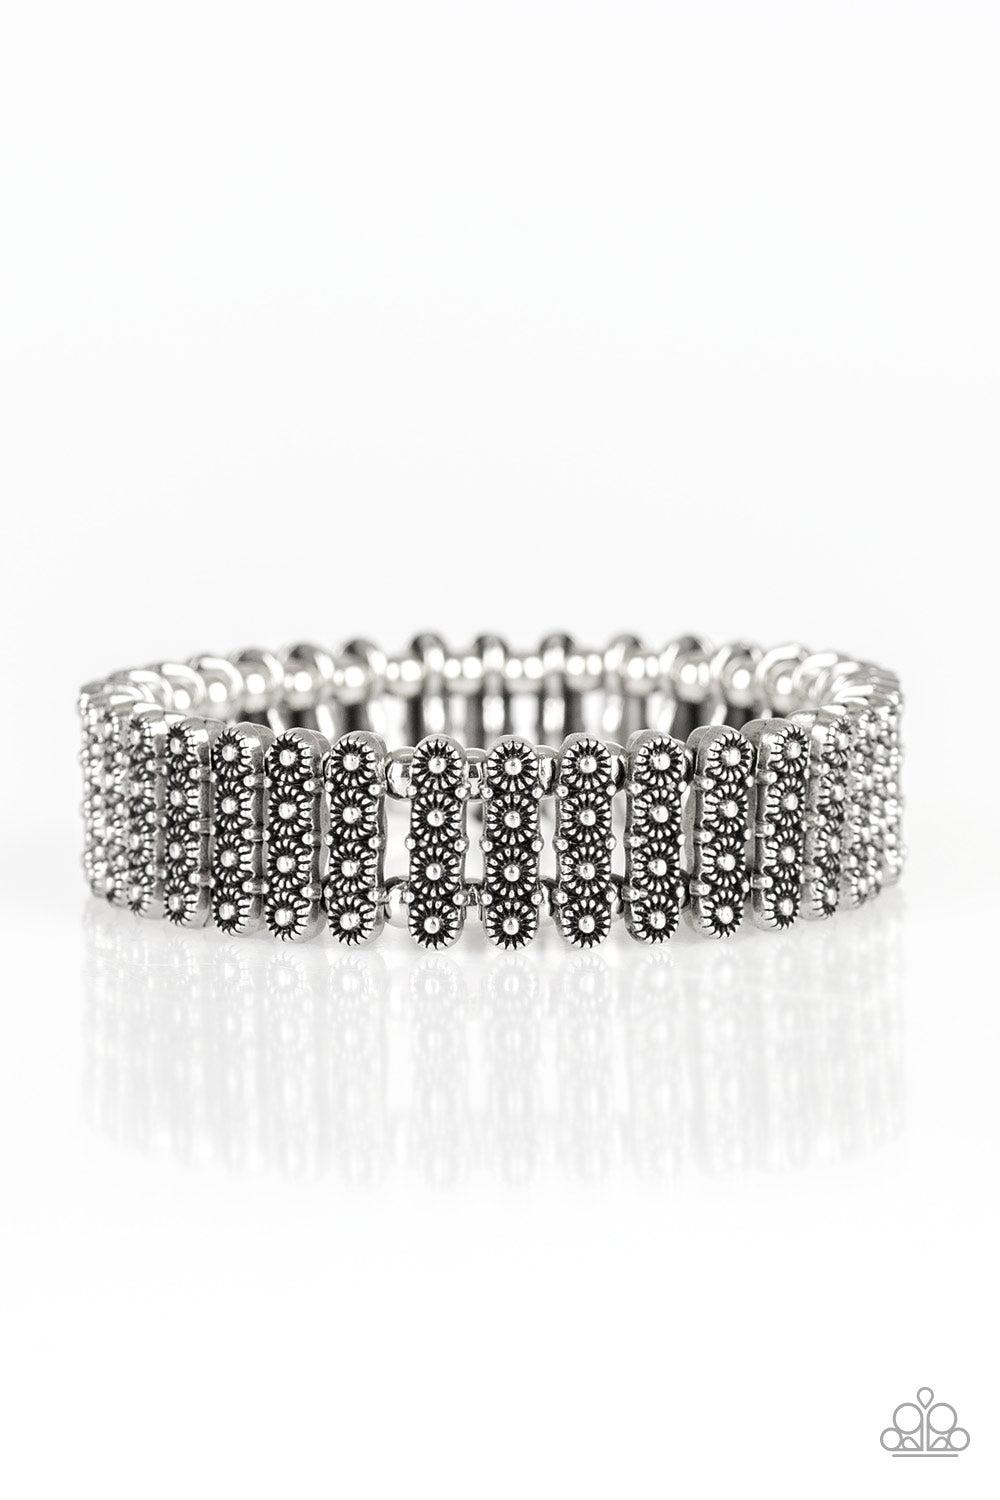 Paparazzi Accessories - Rise With The Sun - Silver Bracelet - JMJ Jewelry Collection